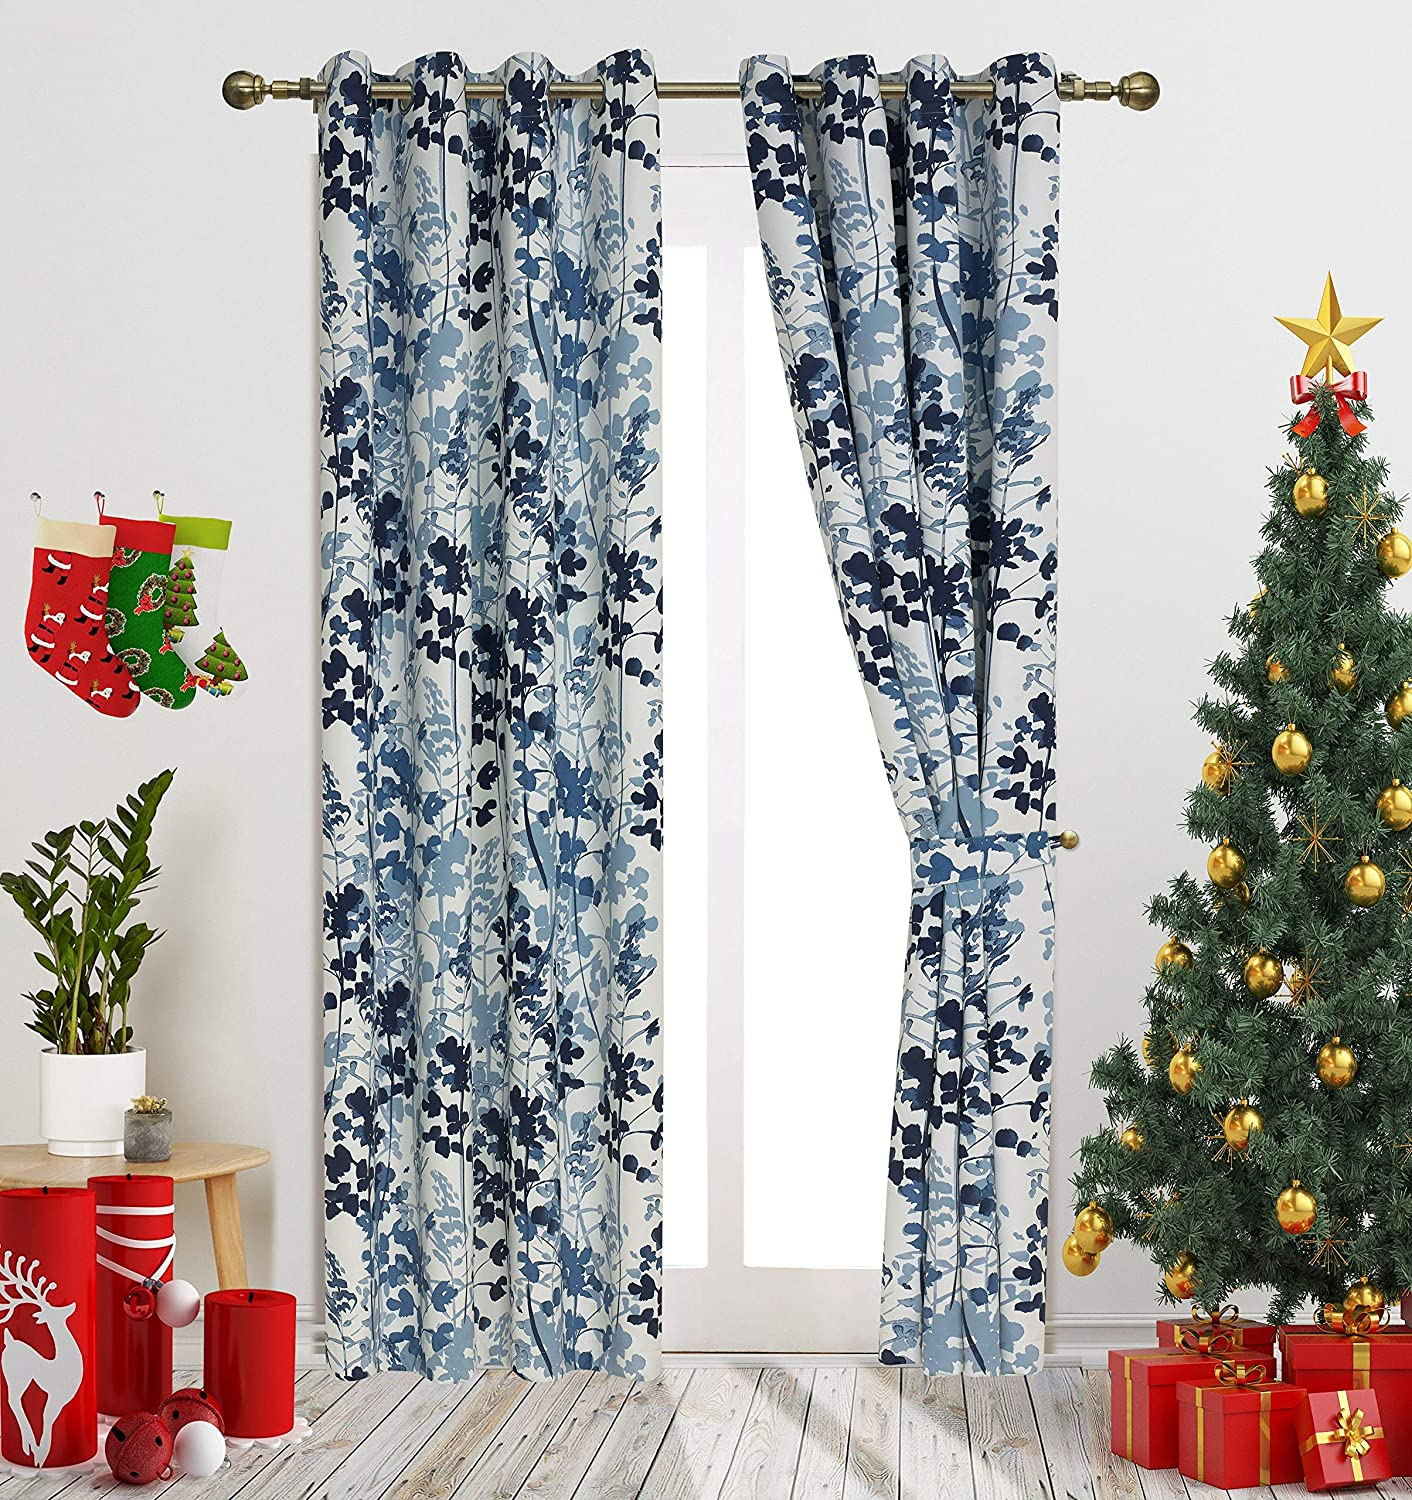 """Gold Dandelion Blue Digital Print Leaves Fashion Design Curtains Contemporary Botanic Floral Style Blackout Curtain Panels for Living Room Window Treatment for Bedroom Grommet Top 54"""" W X 95"""" L 1Pair"""